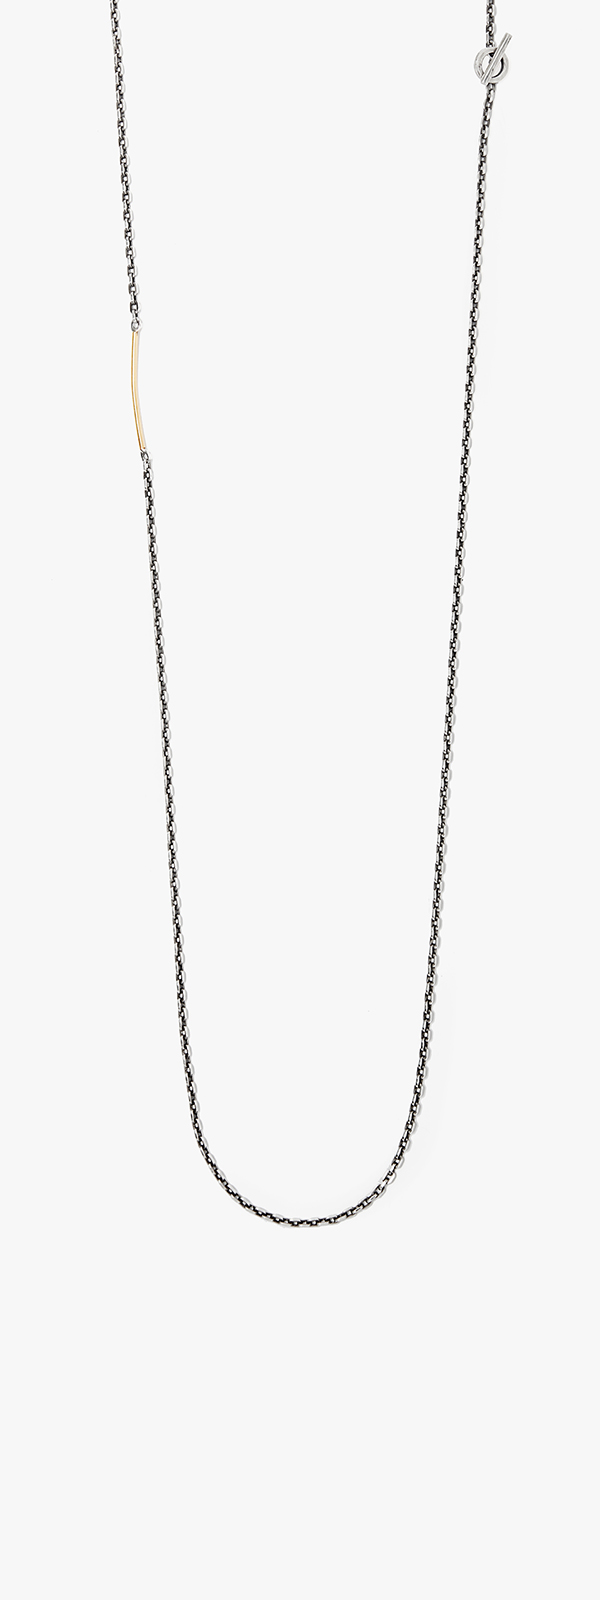 Image of Mixed Metals Necklace 088